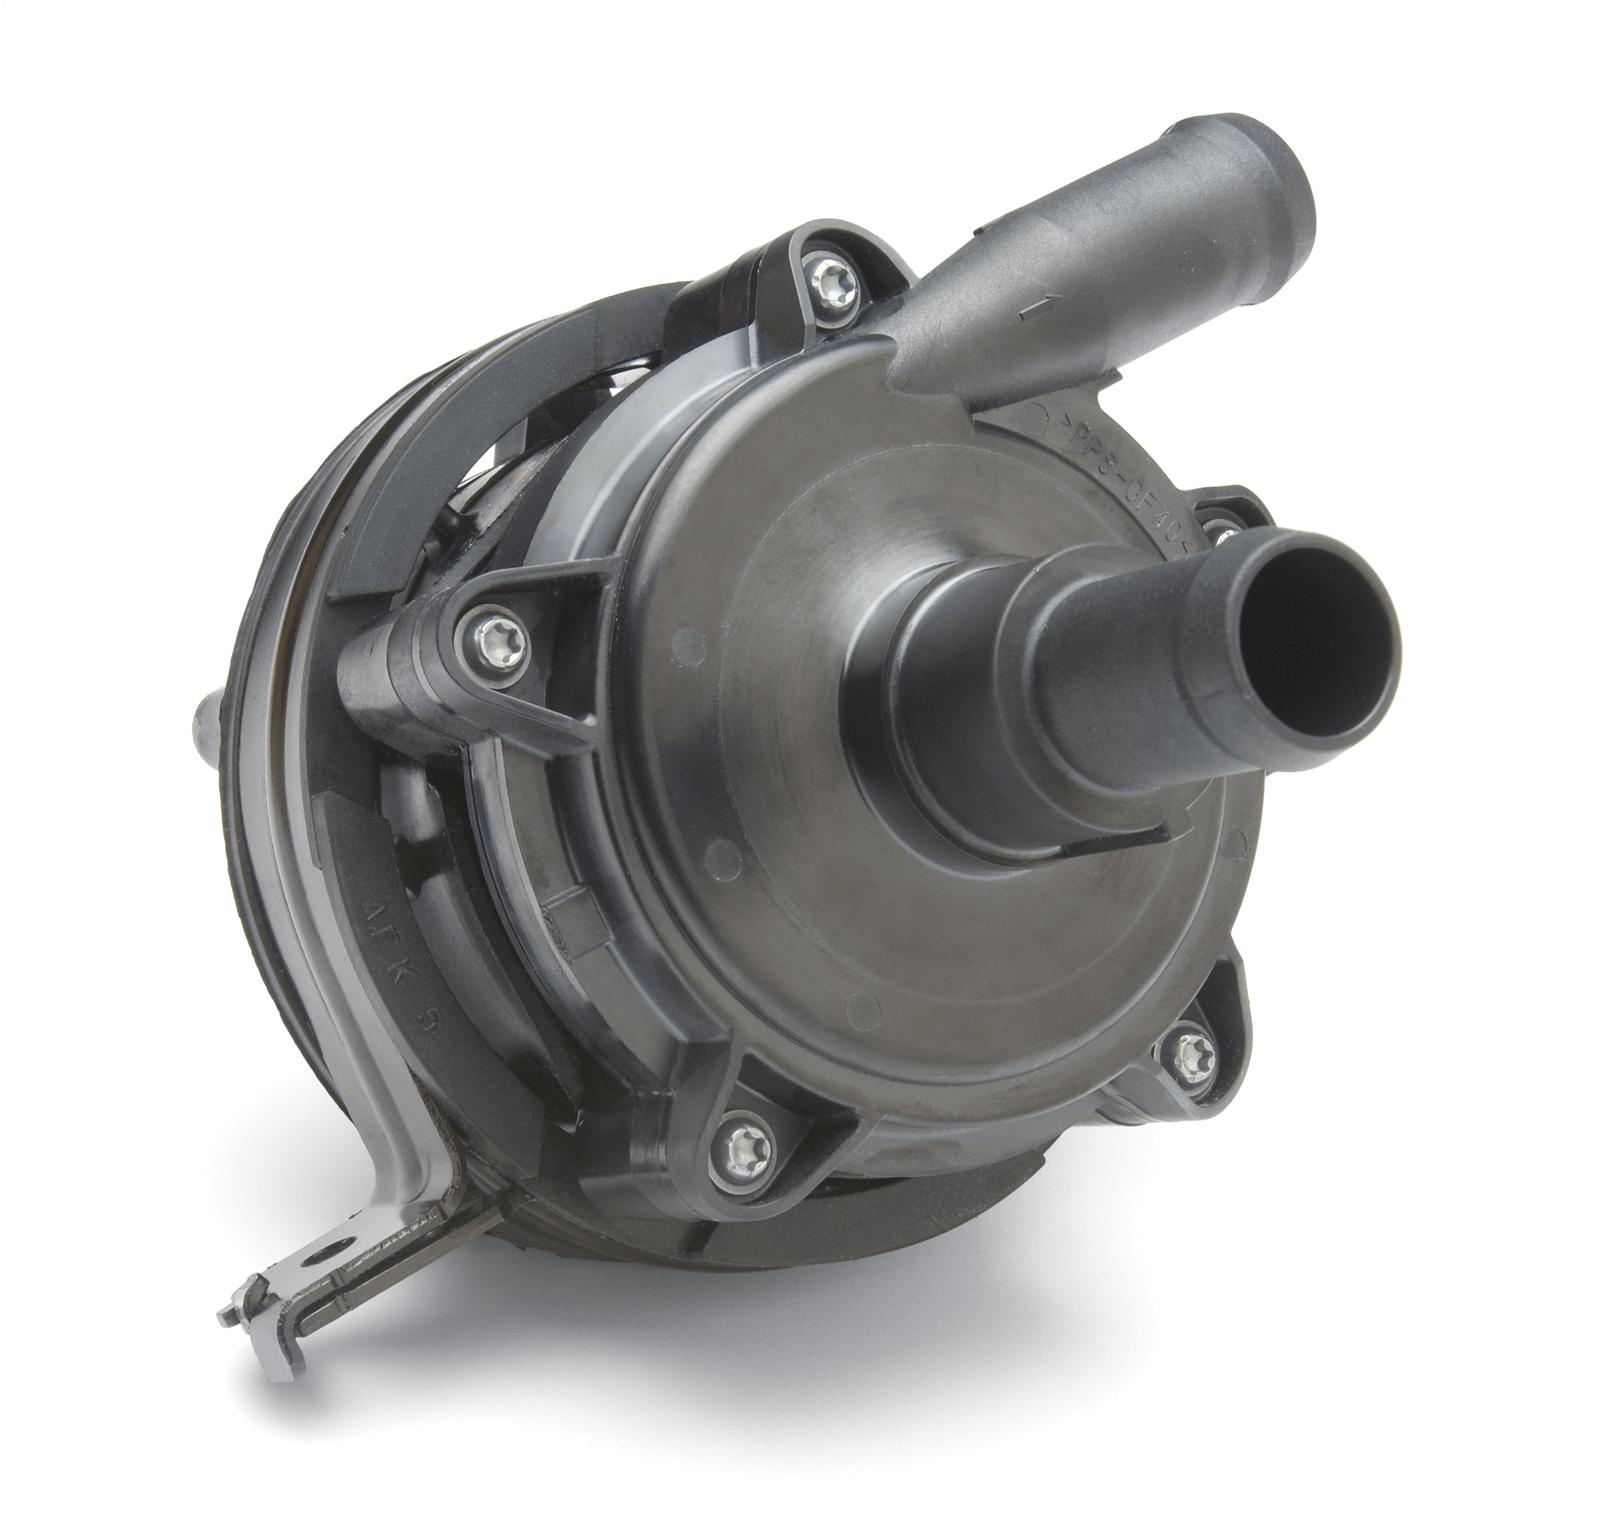 2012-2015 Camaro ZL1 GM Performance Intercooler Water Pump